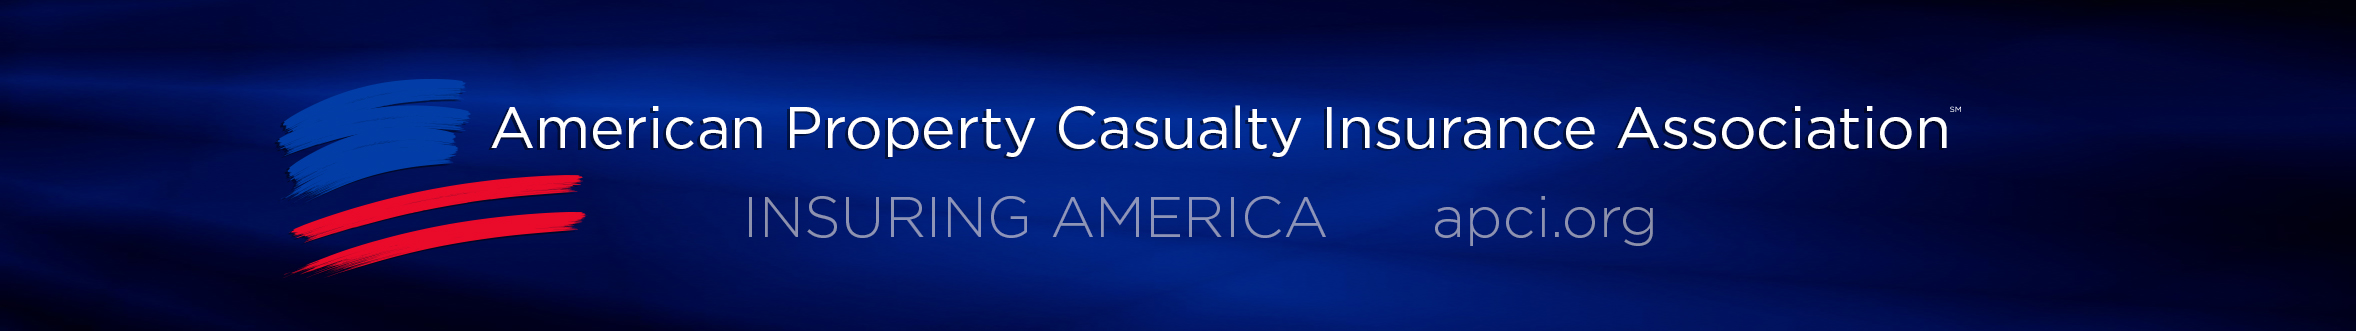 American Property Casualty Insurerance Association